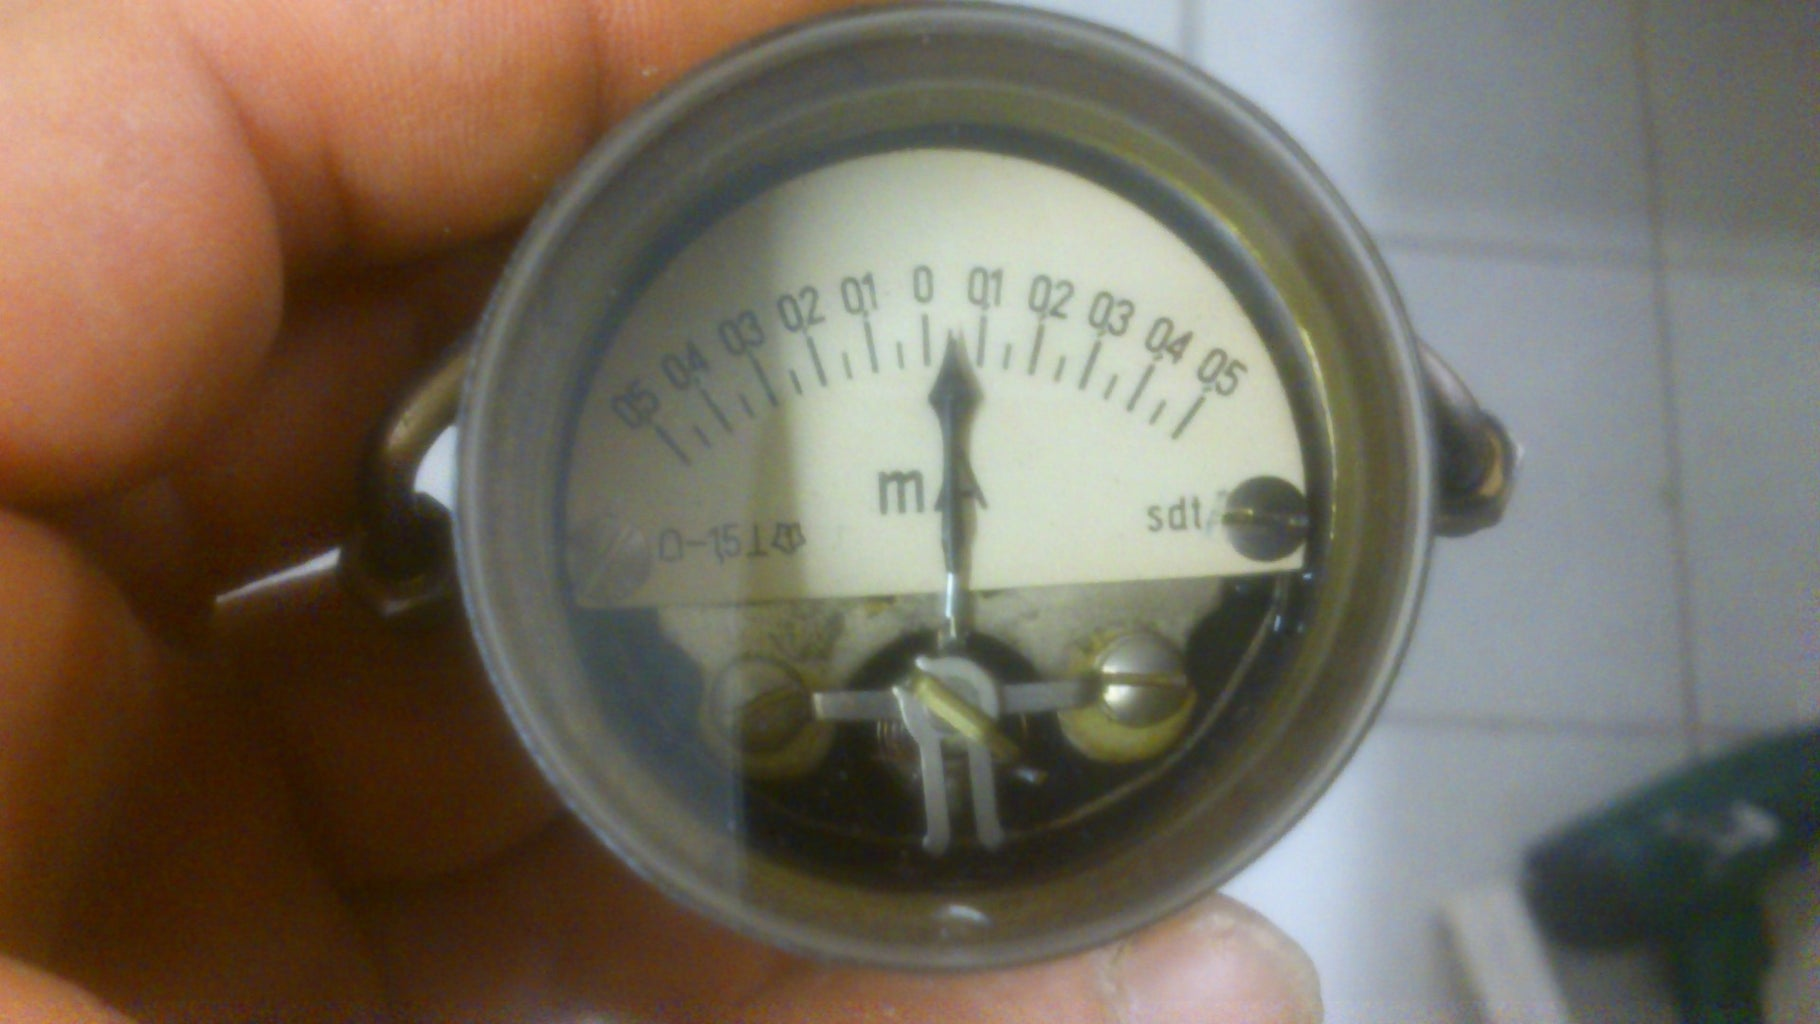 The Measuring Instrument